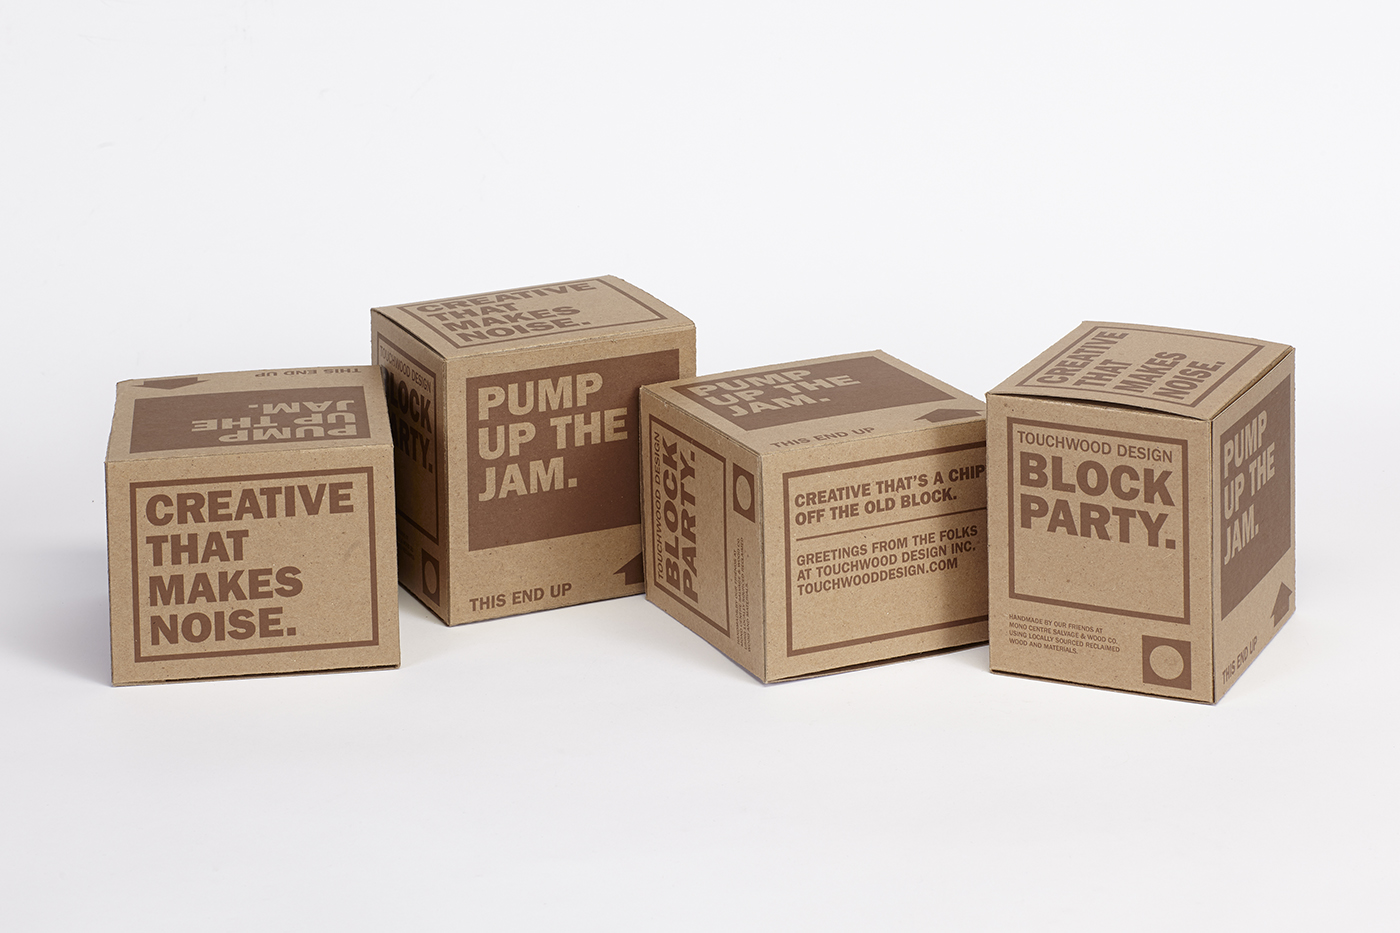 Kraft paper boxes perfectly align with Touchwood Design's wooden speaker, which allows you to play music off your iphone without any power.